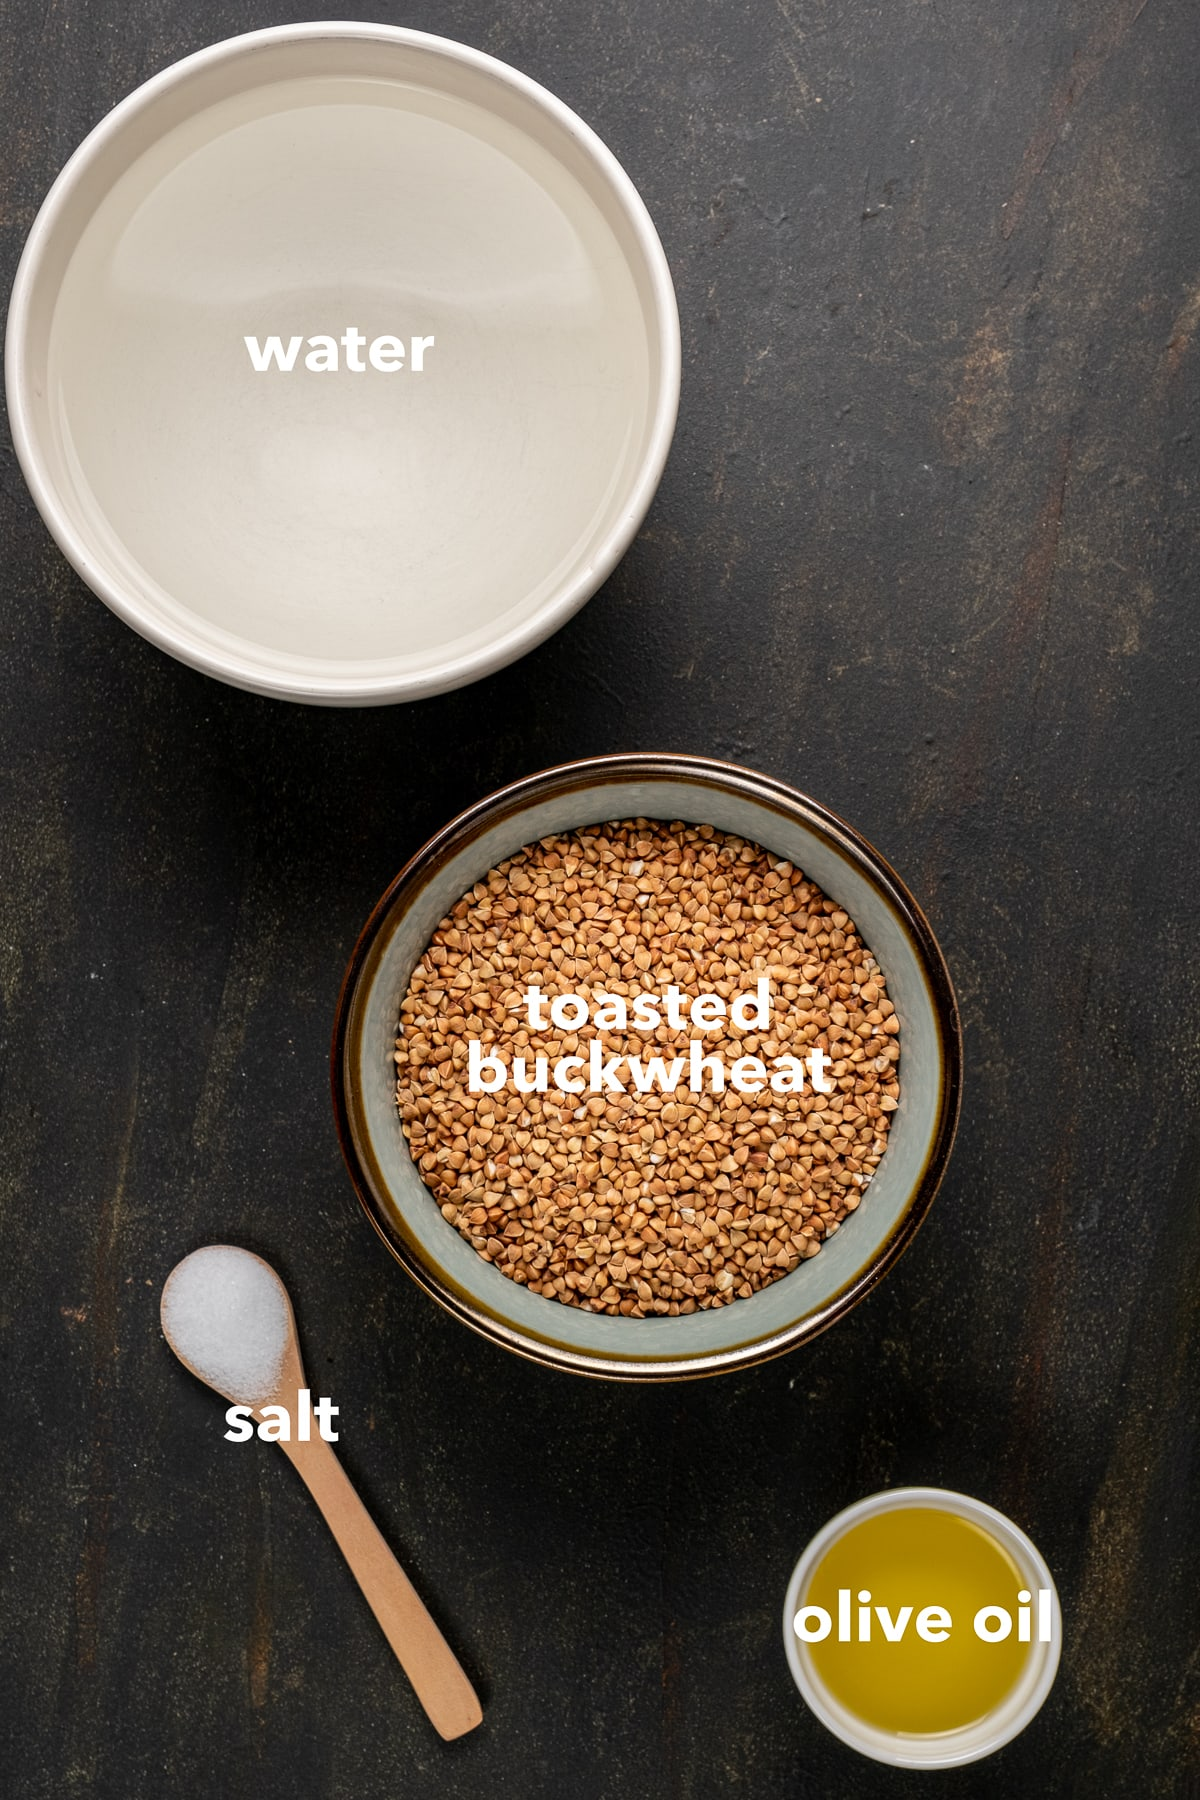 Toasted buckwheat, water, olive oil in bowls and salt in a small wooden spoon